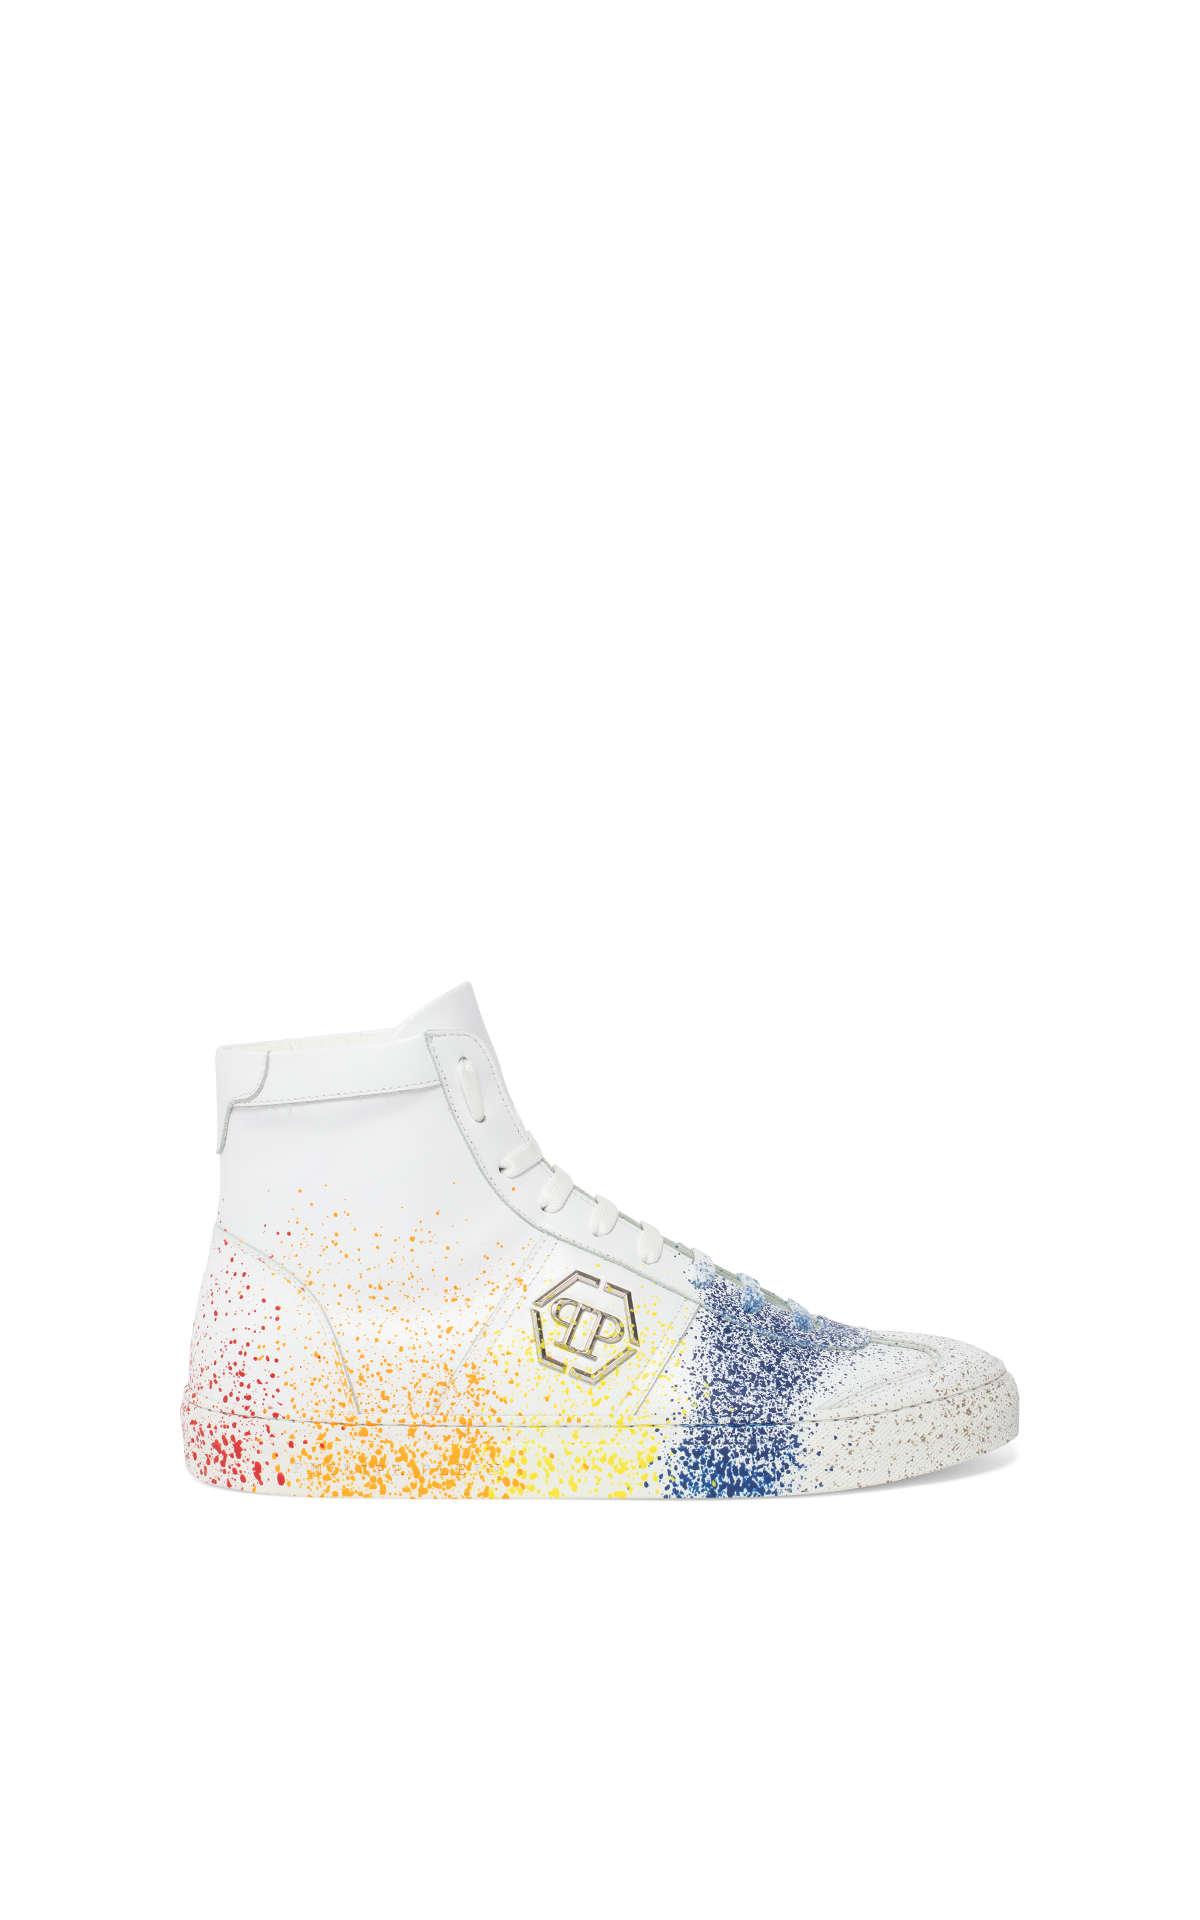 Philipp Plein Men's white high-top sneakers*